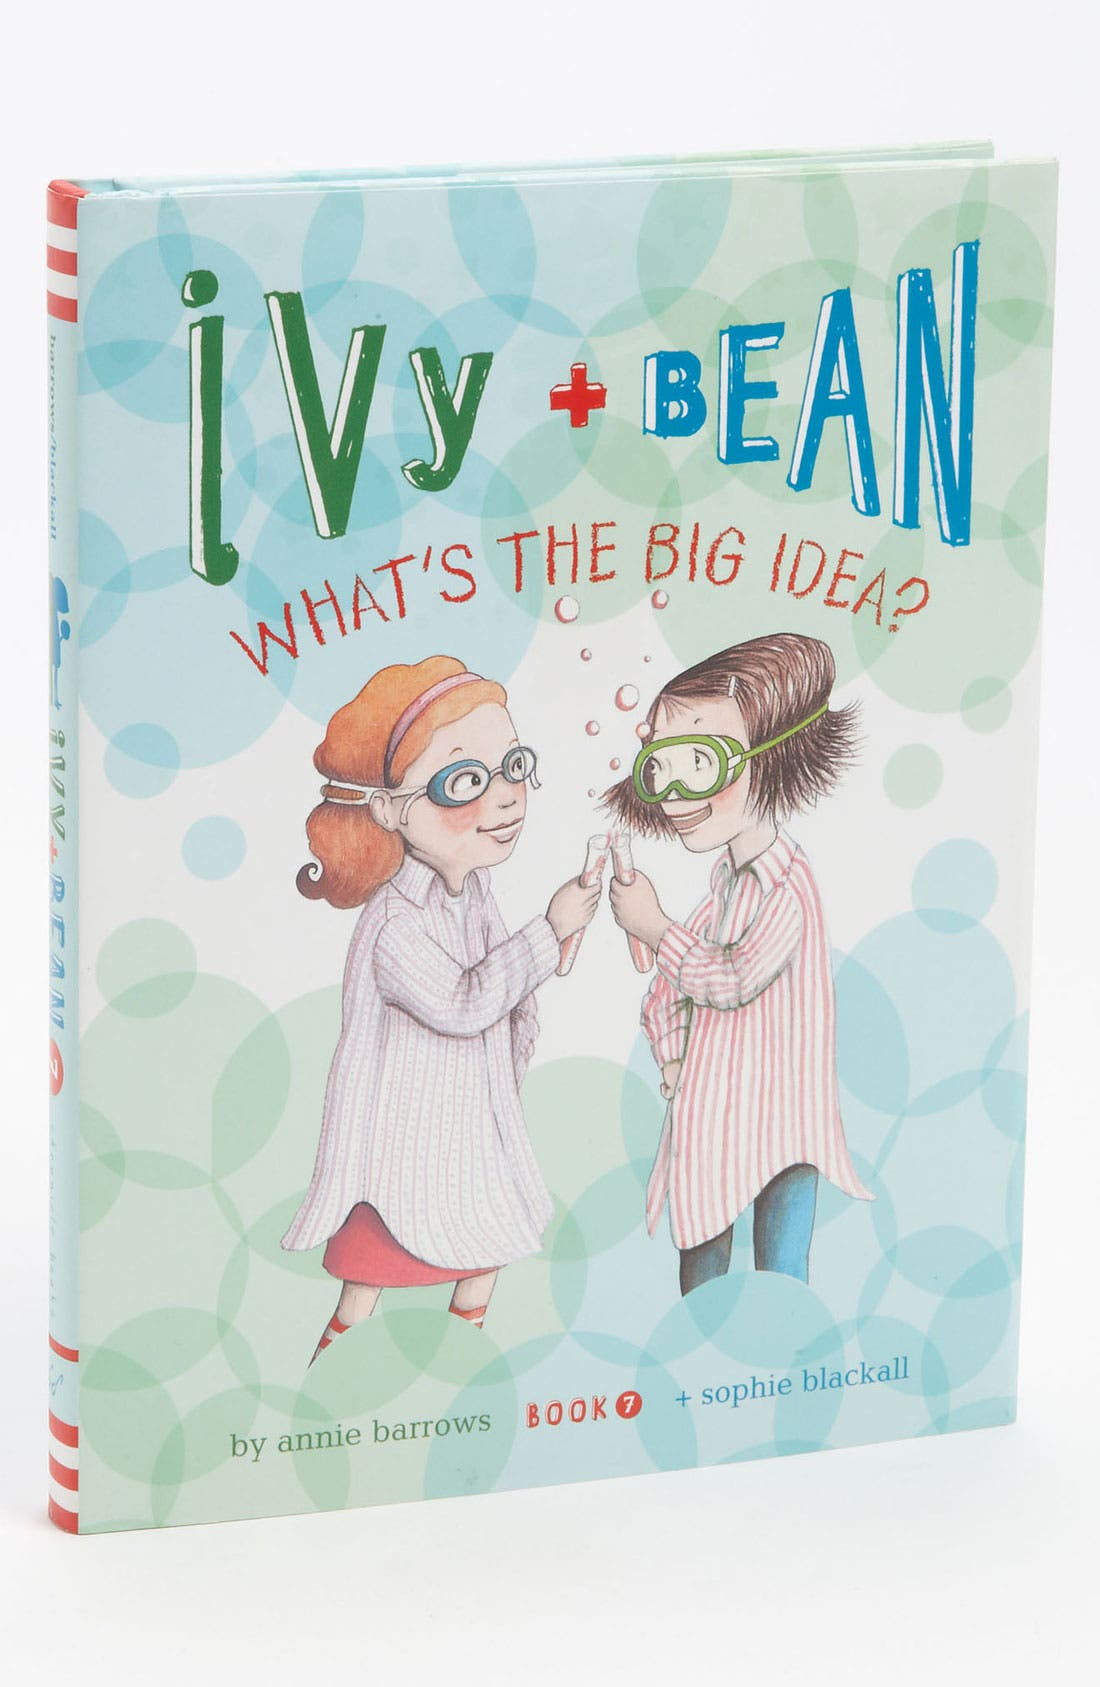 Alternate Image 1 Selected - Annie Barrows & Sophie Blackall 'Ivy + Bean: What's The Big Idea' Book